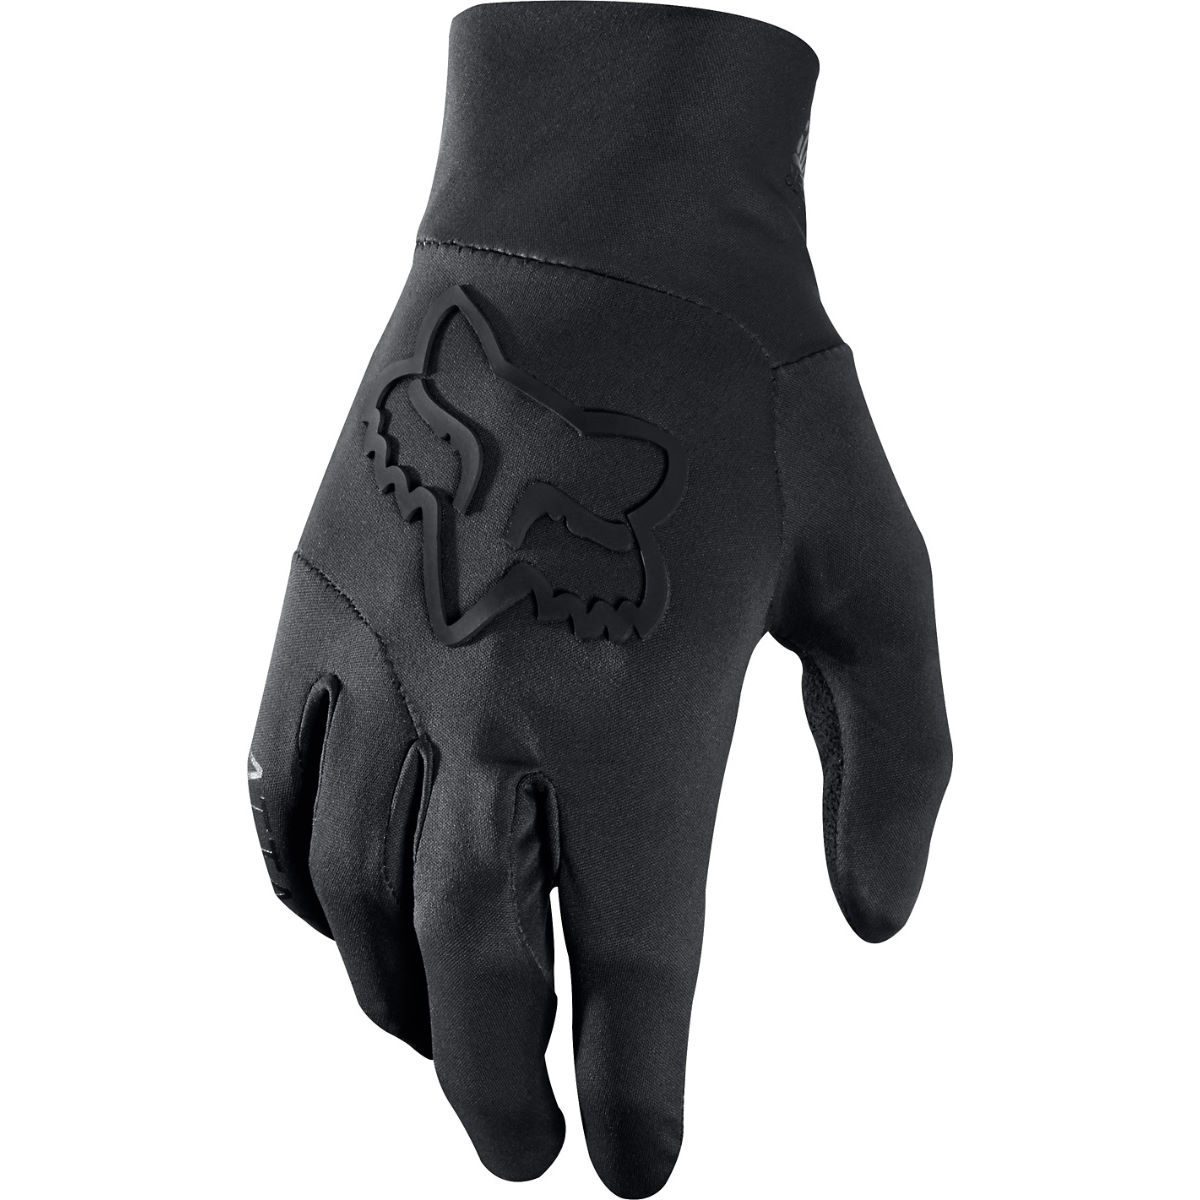 Gants Fox Racing Attack Water - S Noir Gants